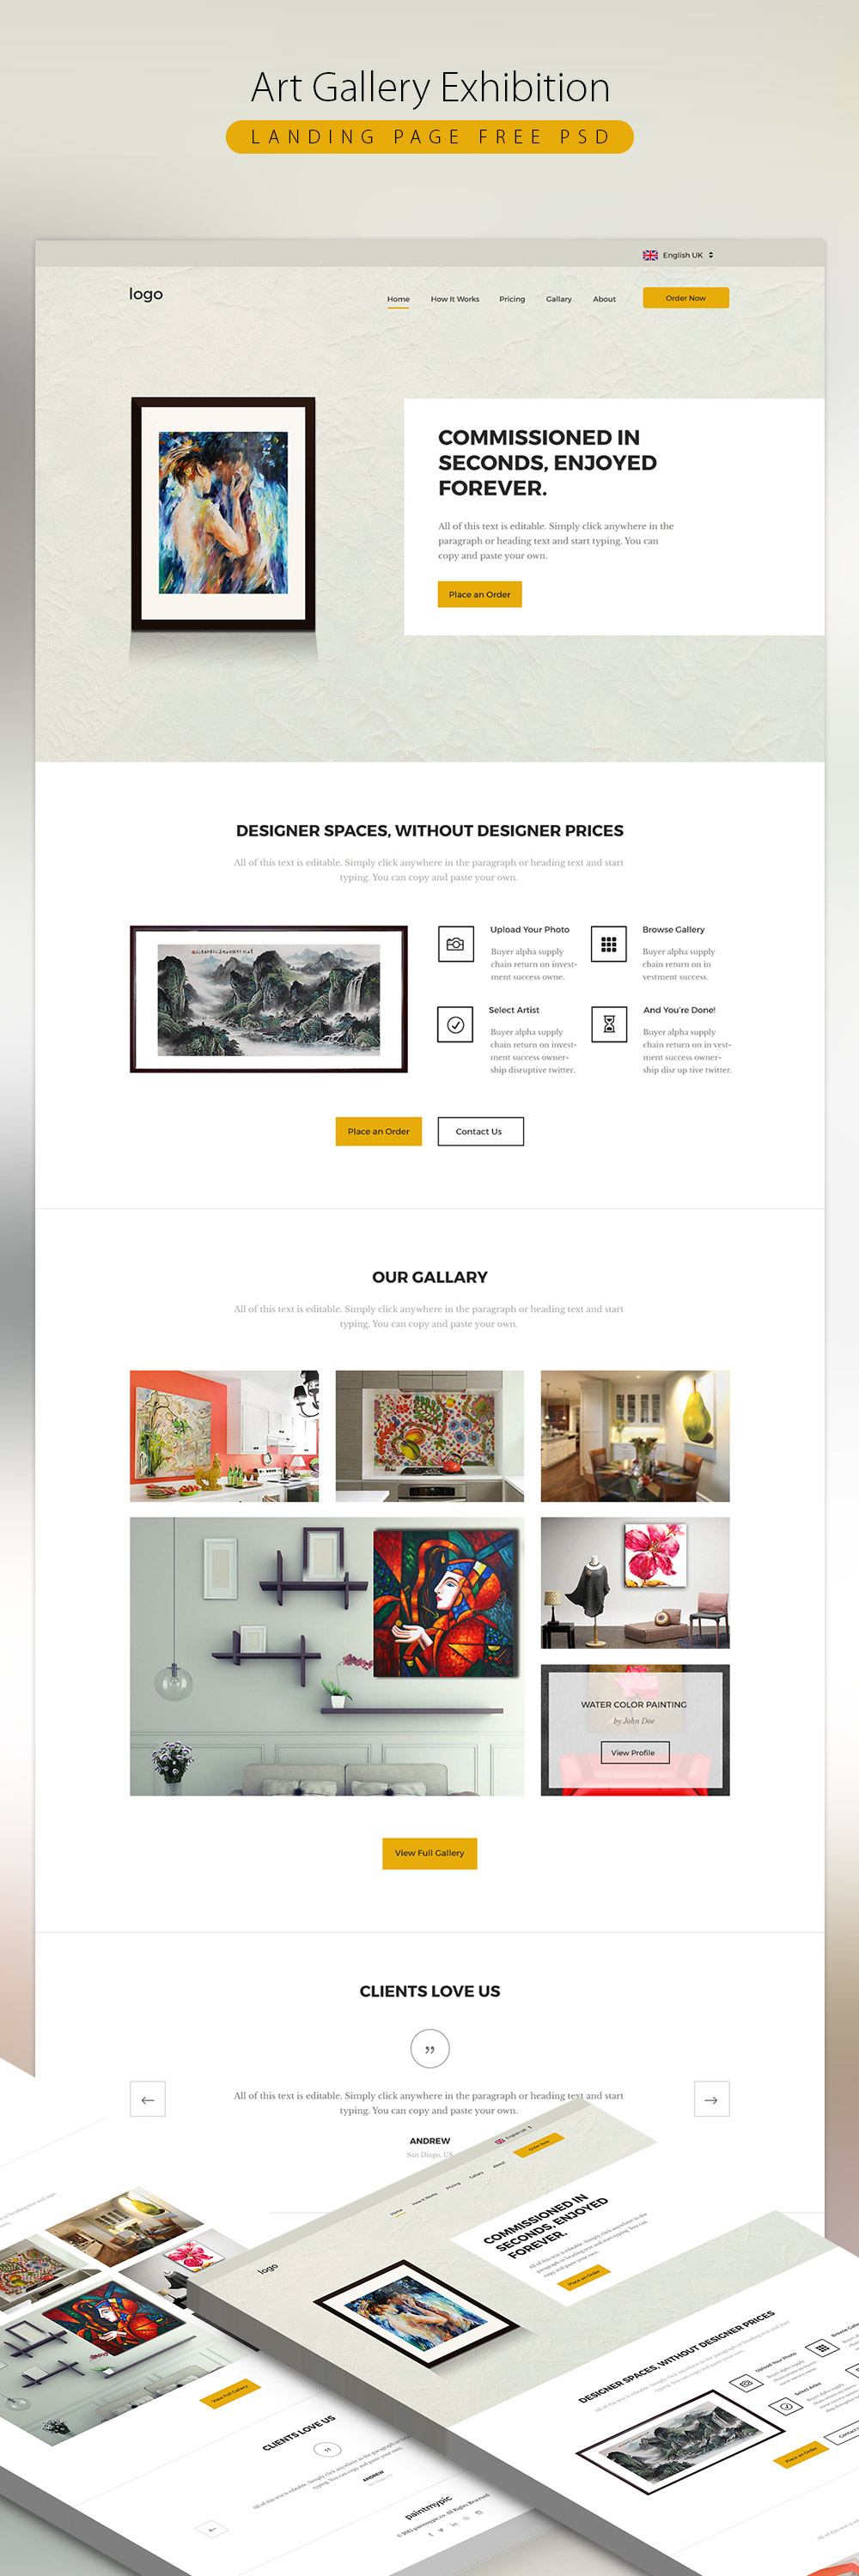 Art gallery exhibition landing page free psd download download psd art gallery exhibition landing page free psd www website template website layout website webpage web template pronofoot35fo Choice Image